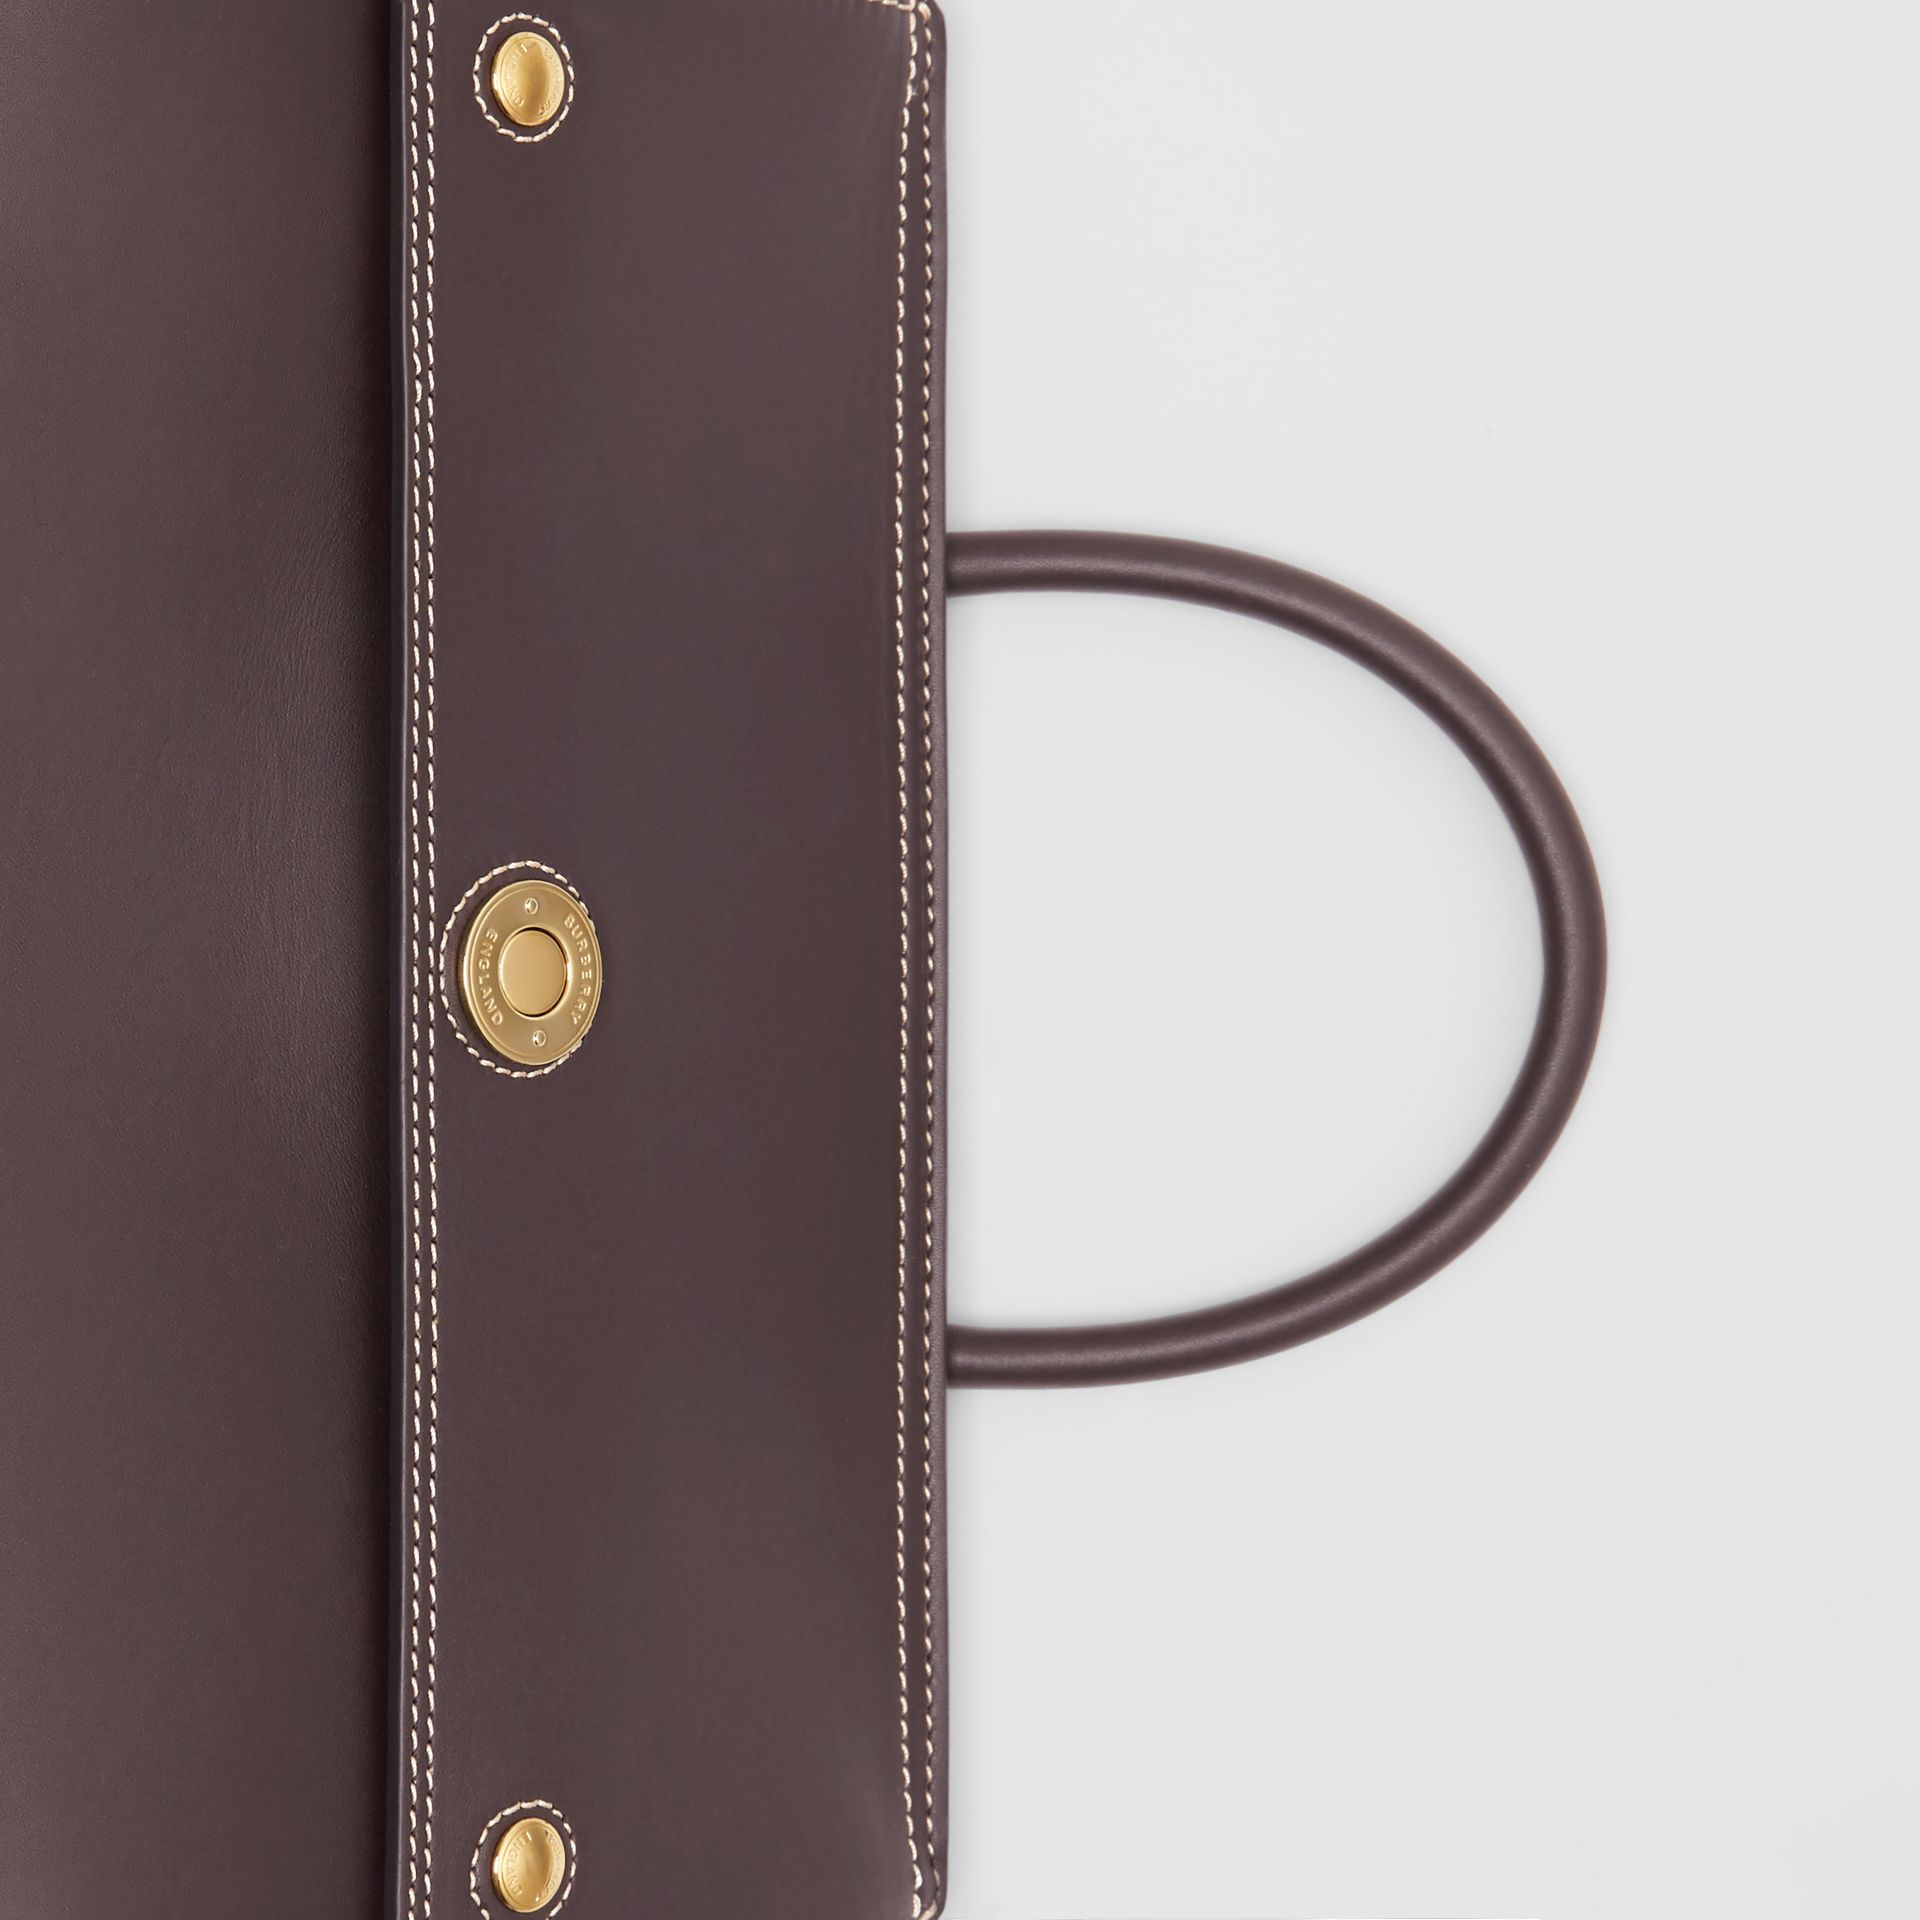 Small Leather Elizabeth Bag in Coffee - Women | Burberry United States - gallery image 1